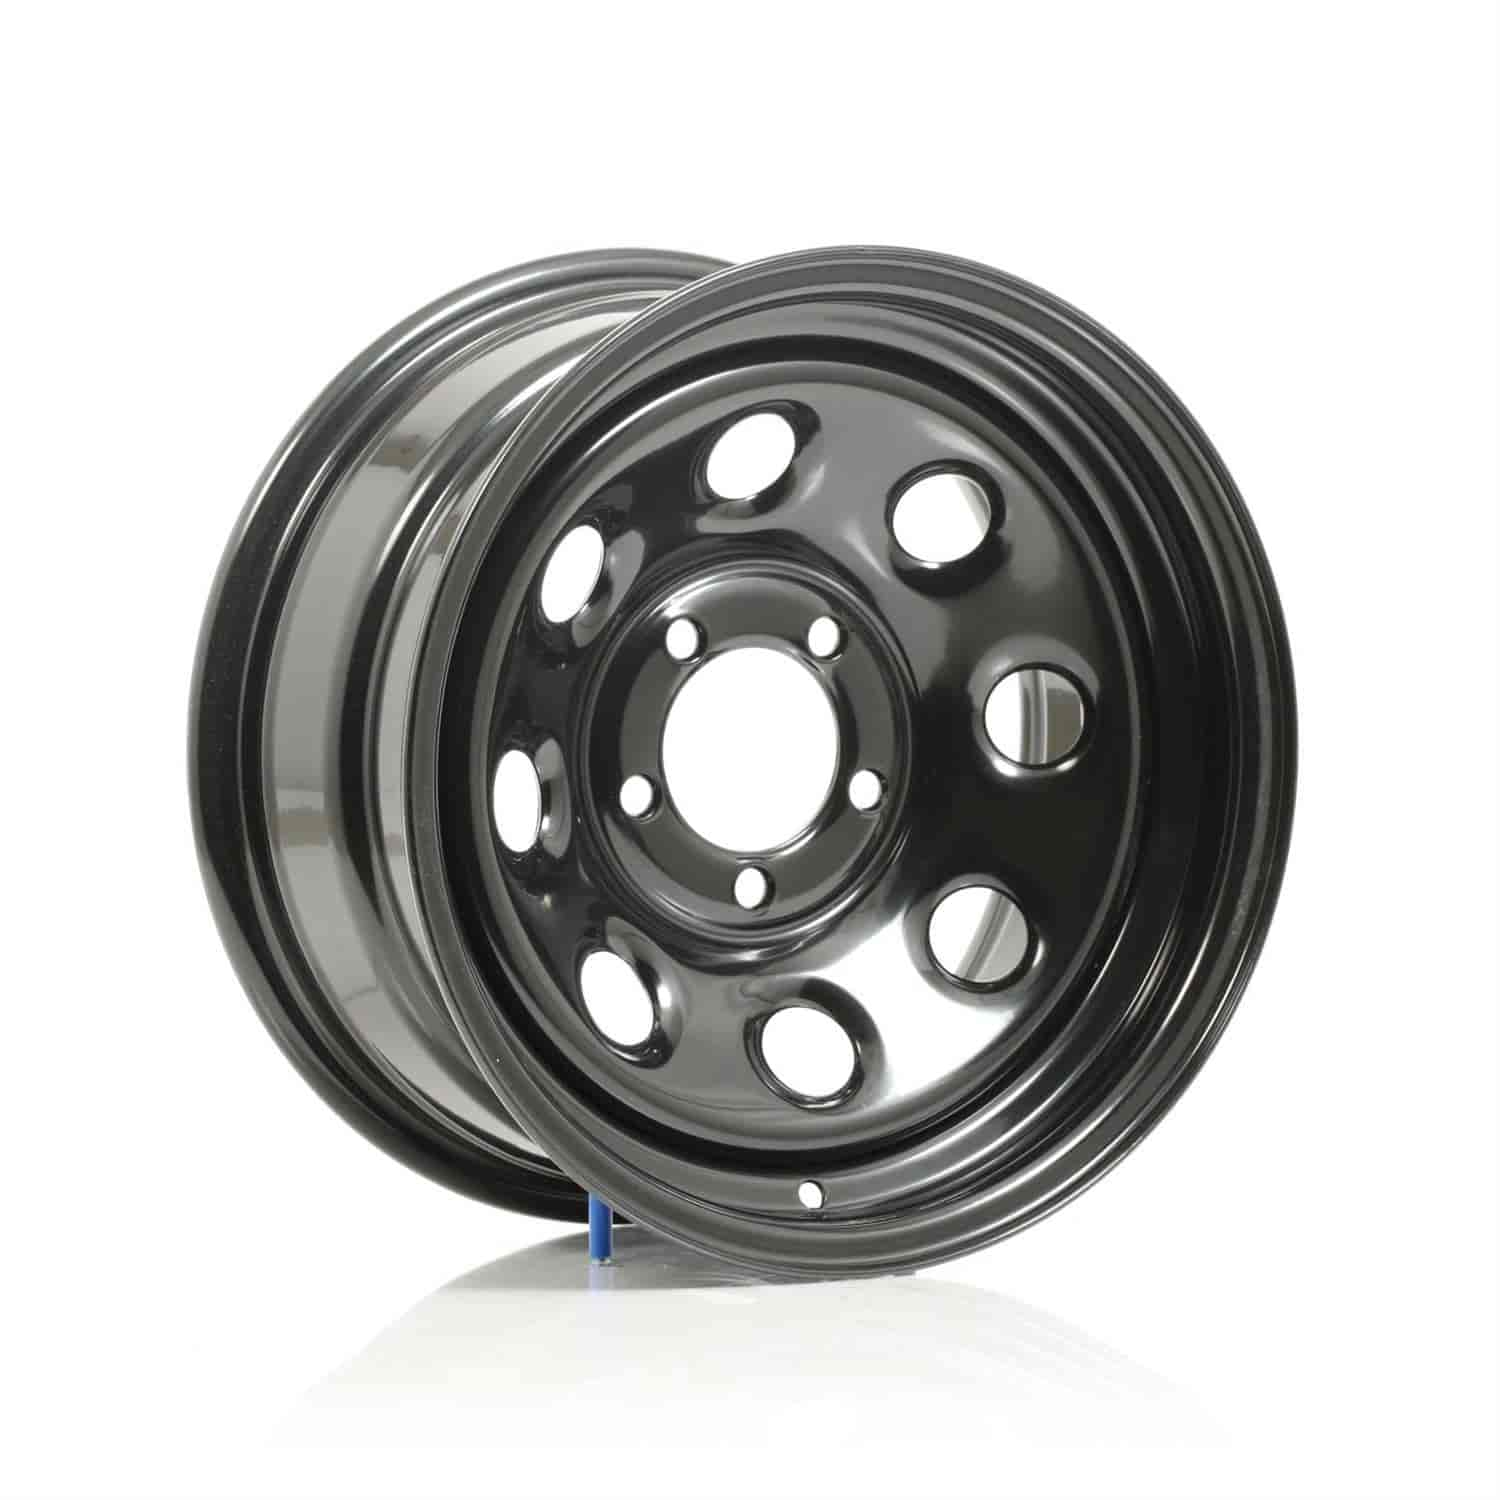 Cragar 3975760 - Cragar Black Soft 8 Wheels